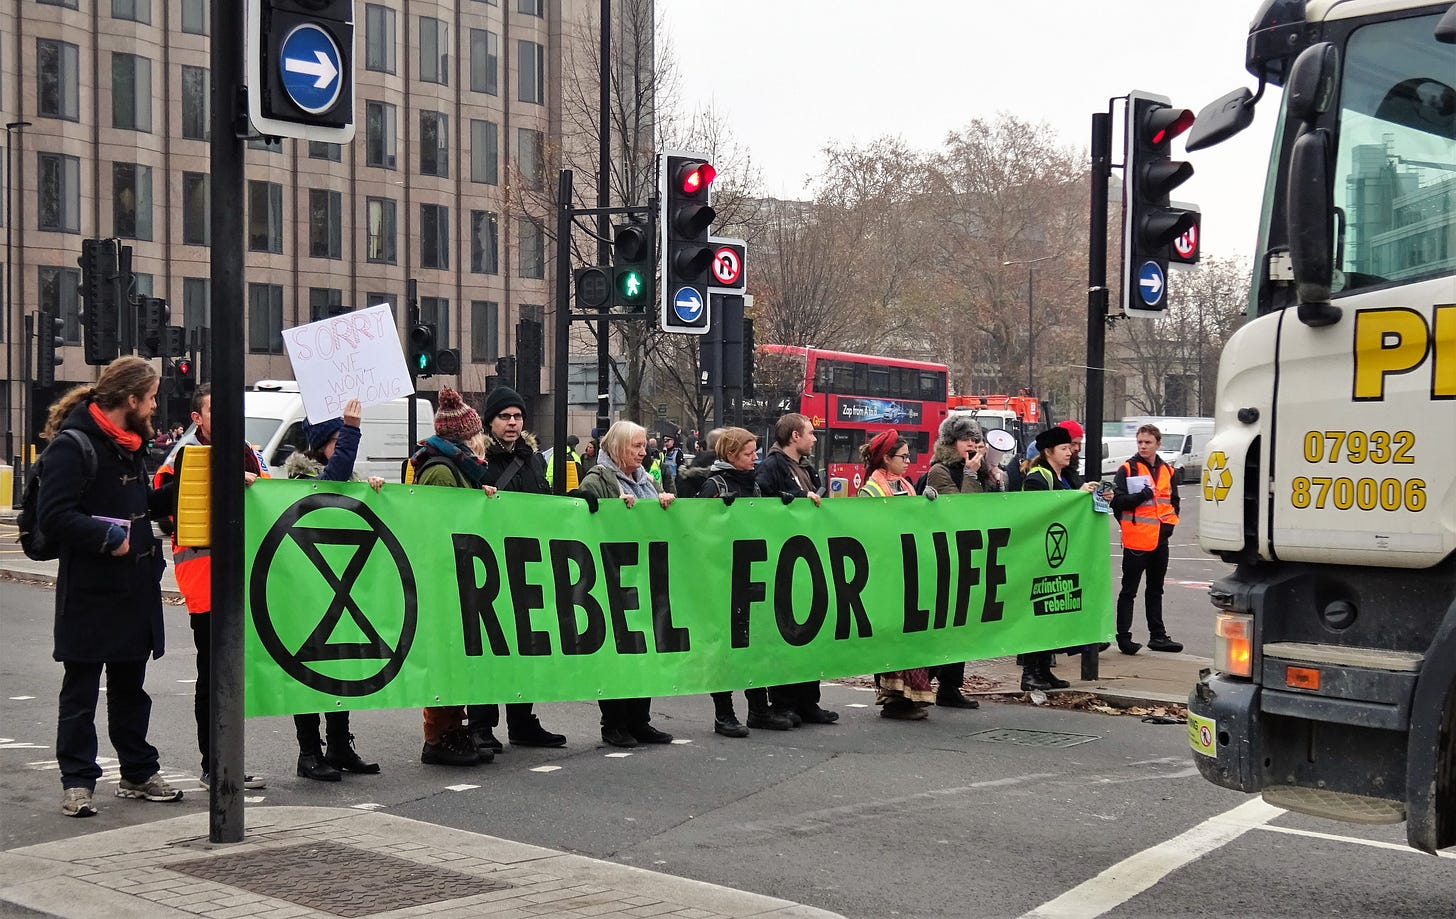 """""""File:London November 23 2018 (19) Extinction Rebellion Protest Tower Hill.jpg"""" by DAVID HOLT is licensed under CC BY 2.0"""